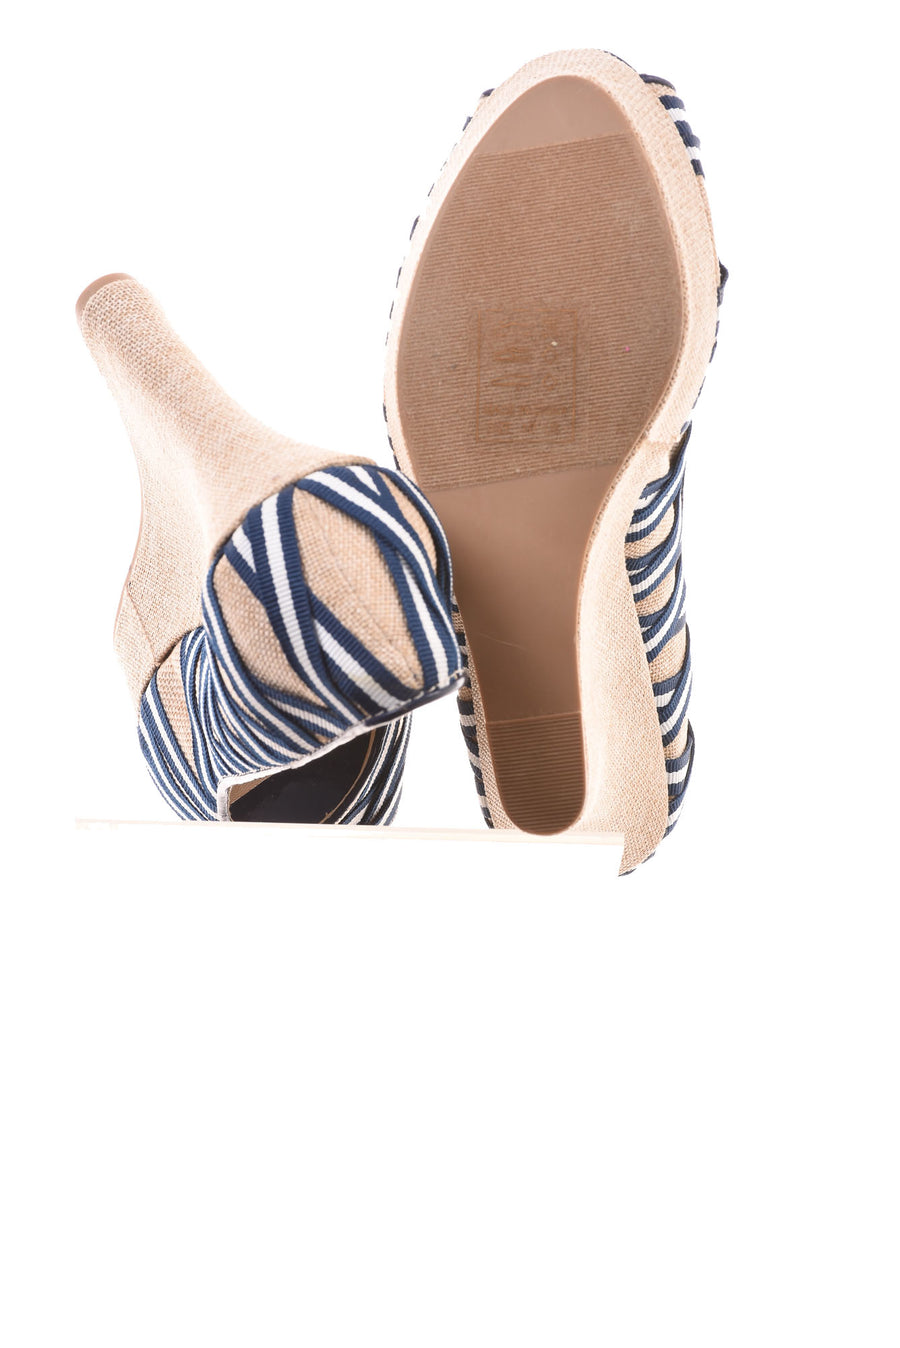 USED Shoe Dazzle Women's Shoes 10 Blue & White